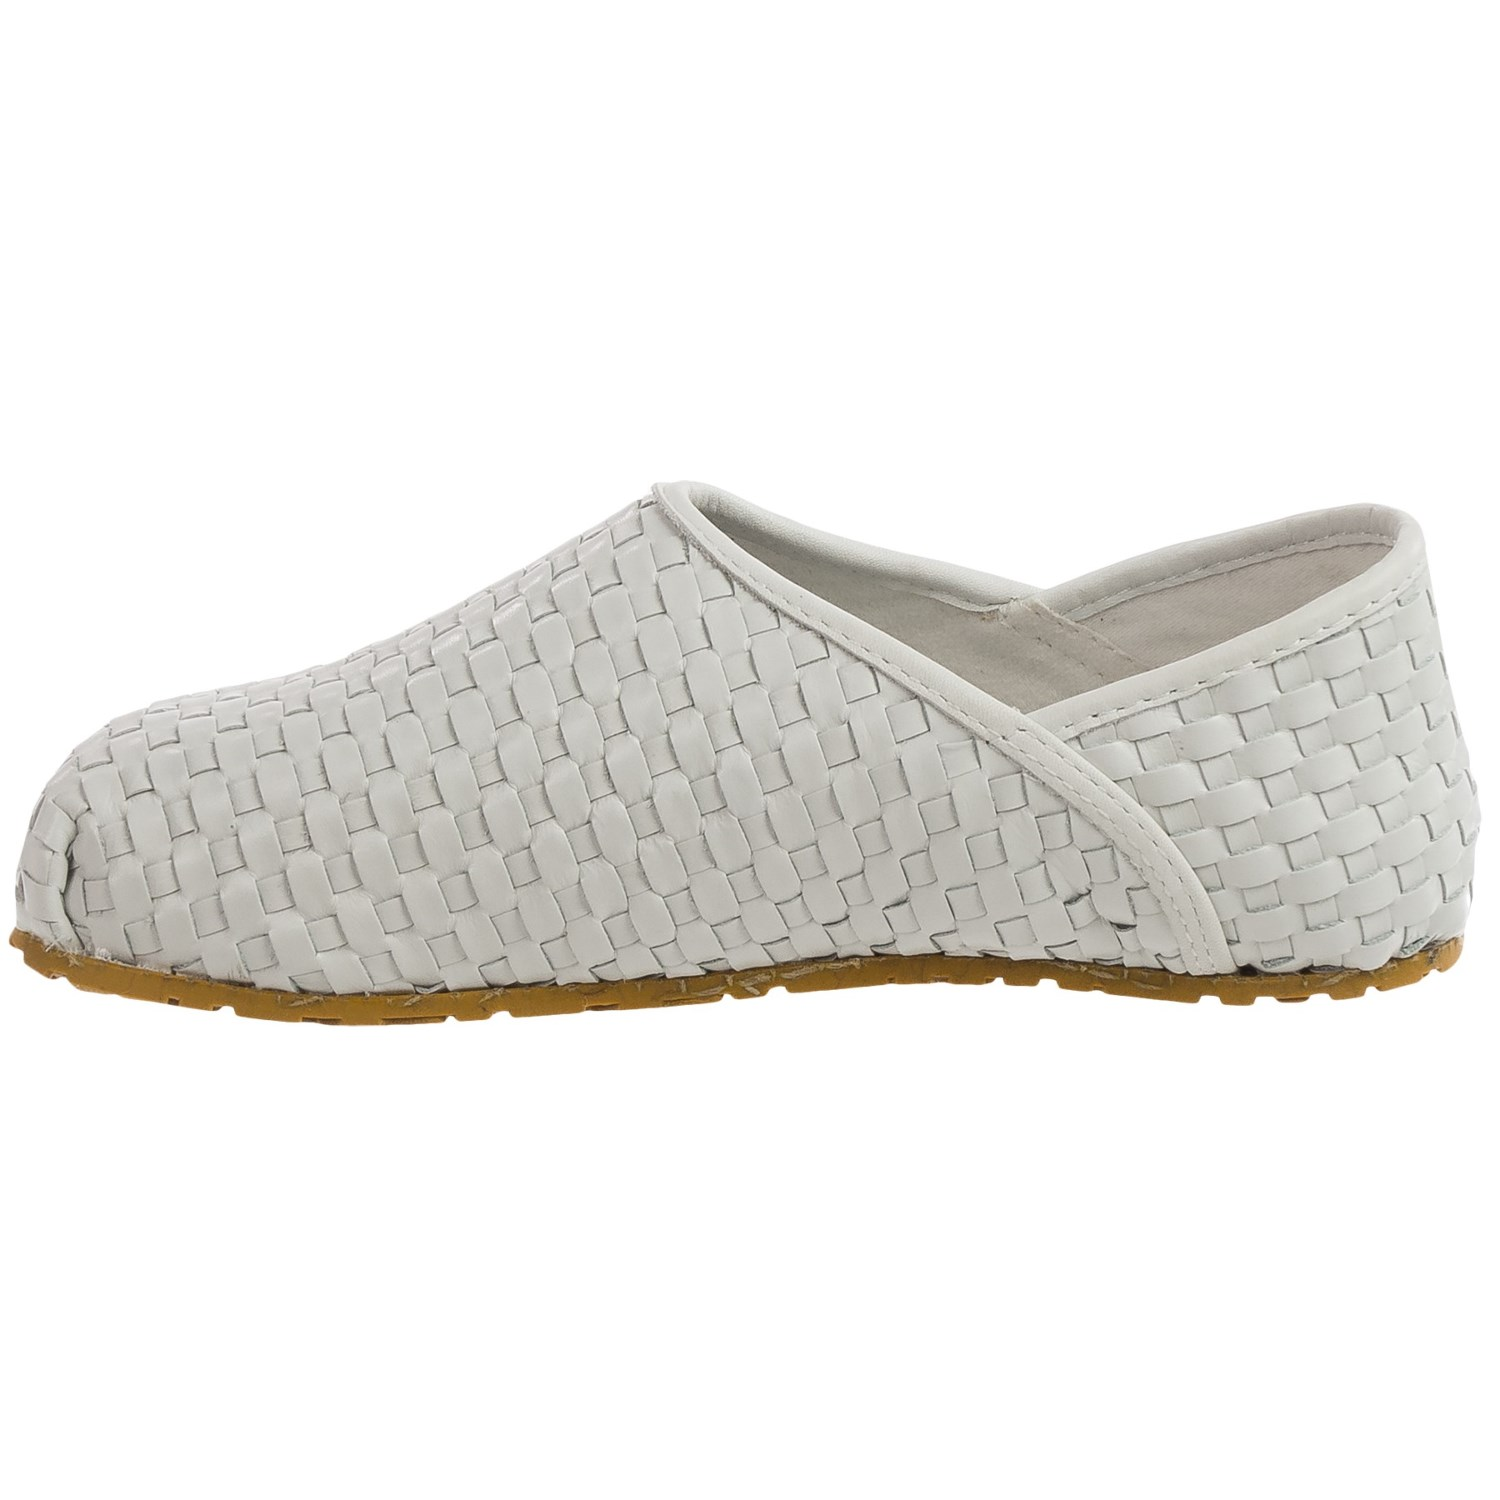 otz shoes 300gms woven shoes for and save 84